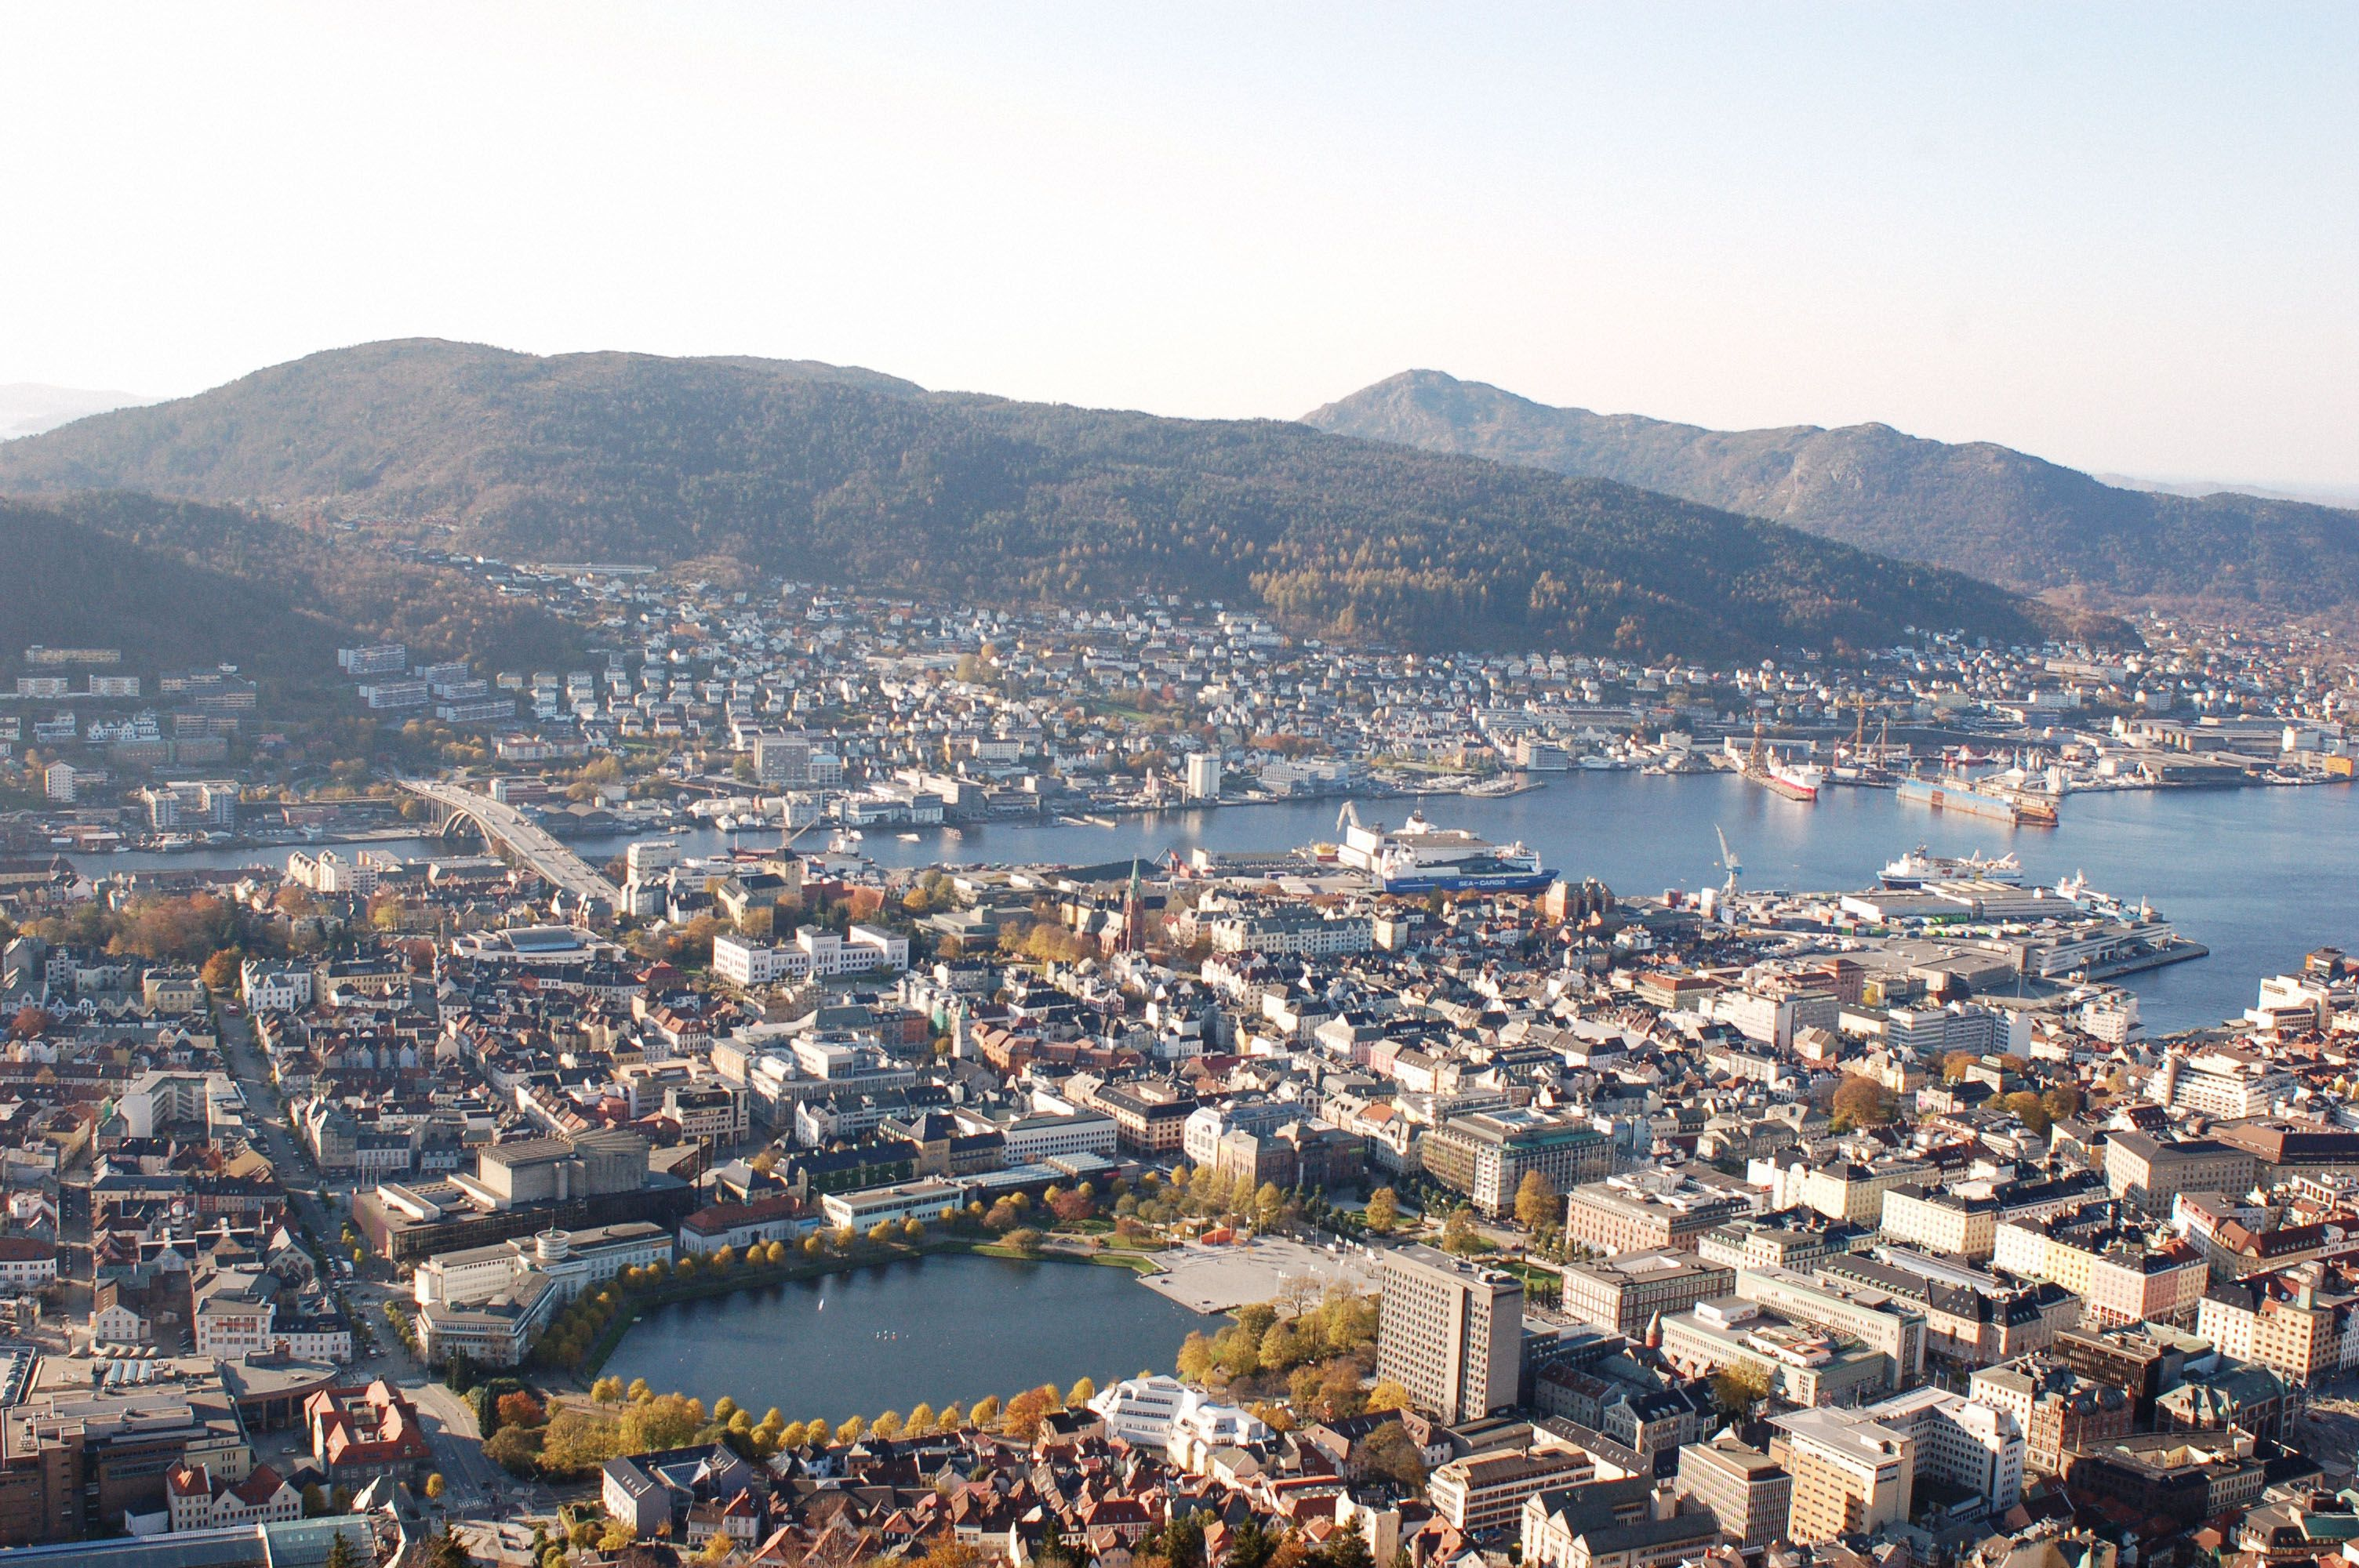 View of Bergen from top of the mountain